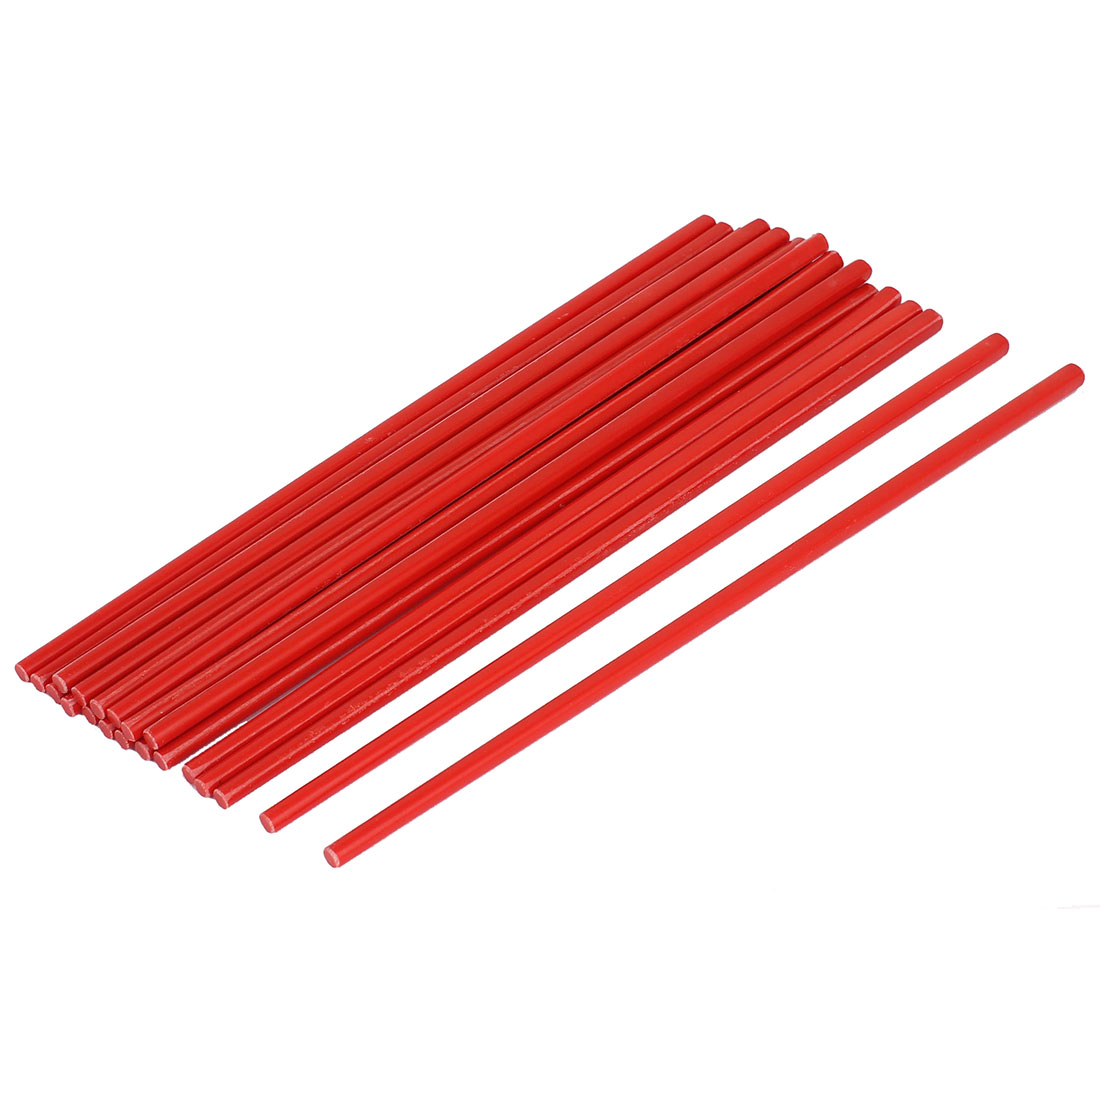 10 Pairs Plastic Chinese Style Dinner Chopsticks 10.7 Inch Length Red